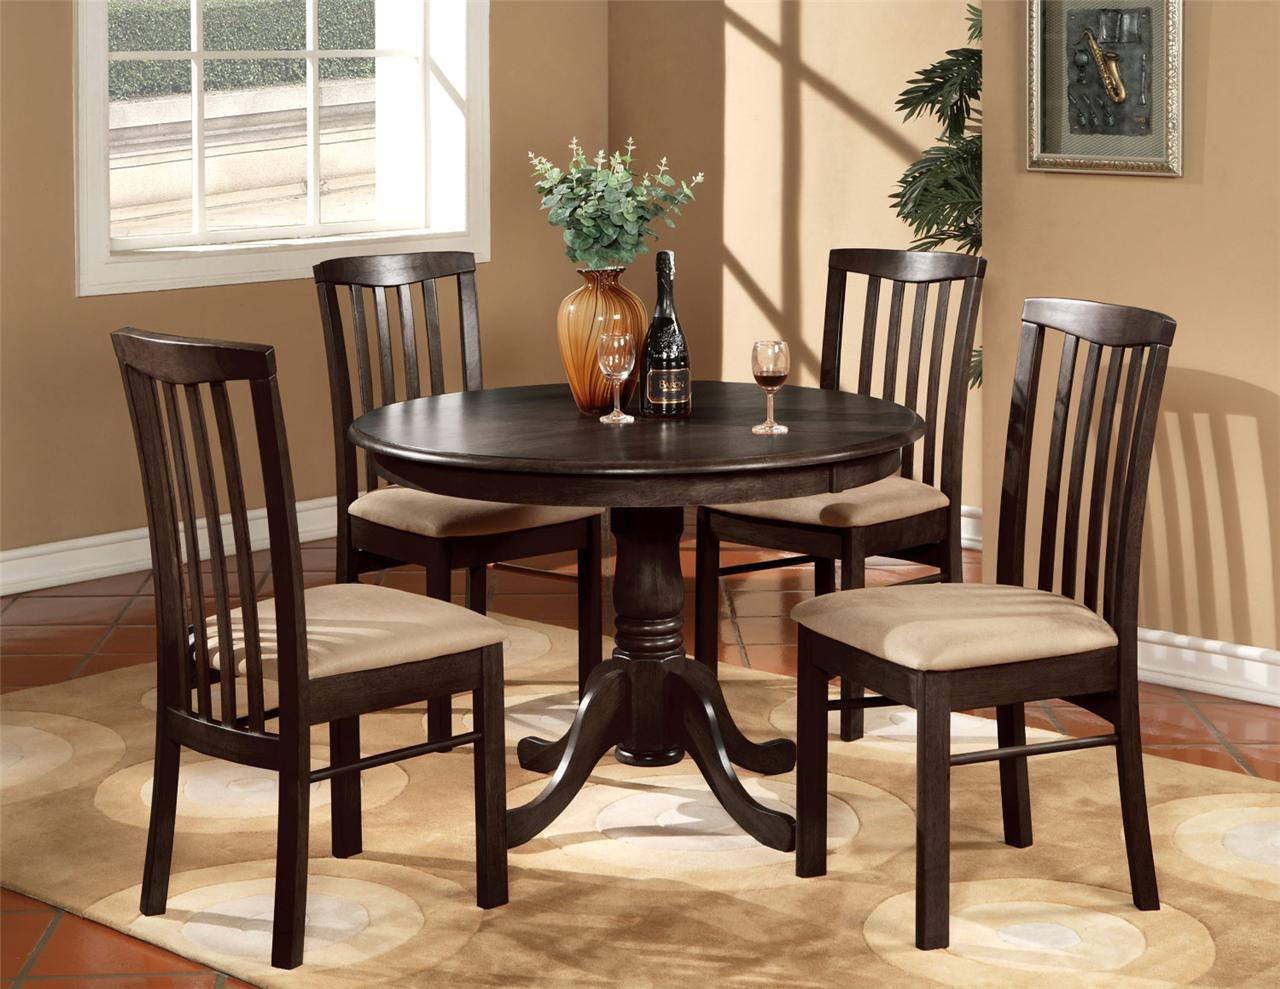 Round kitchen table and chairs Photo - 1